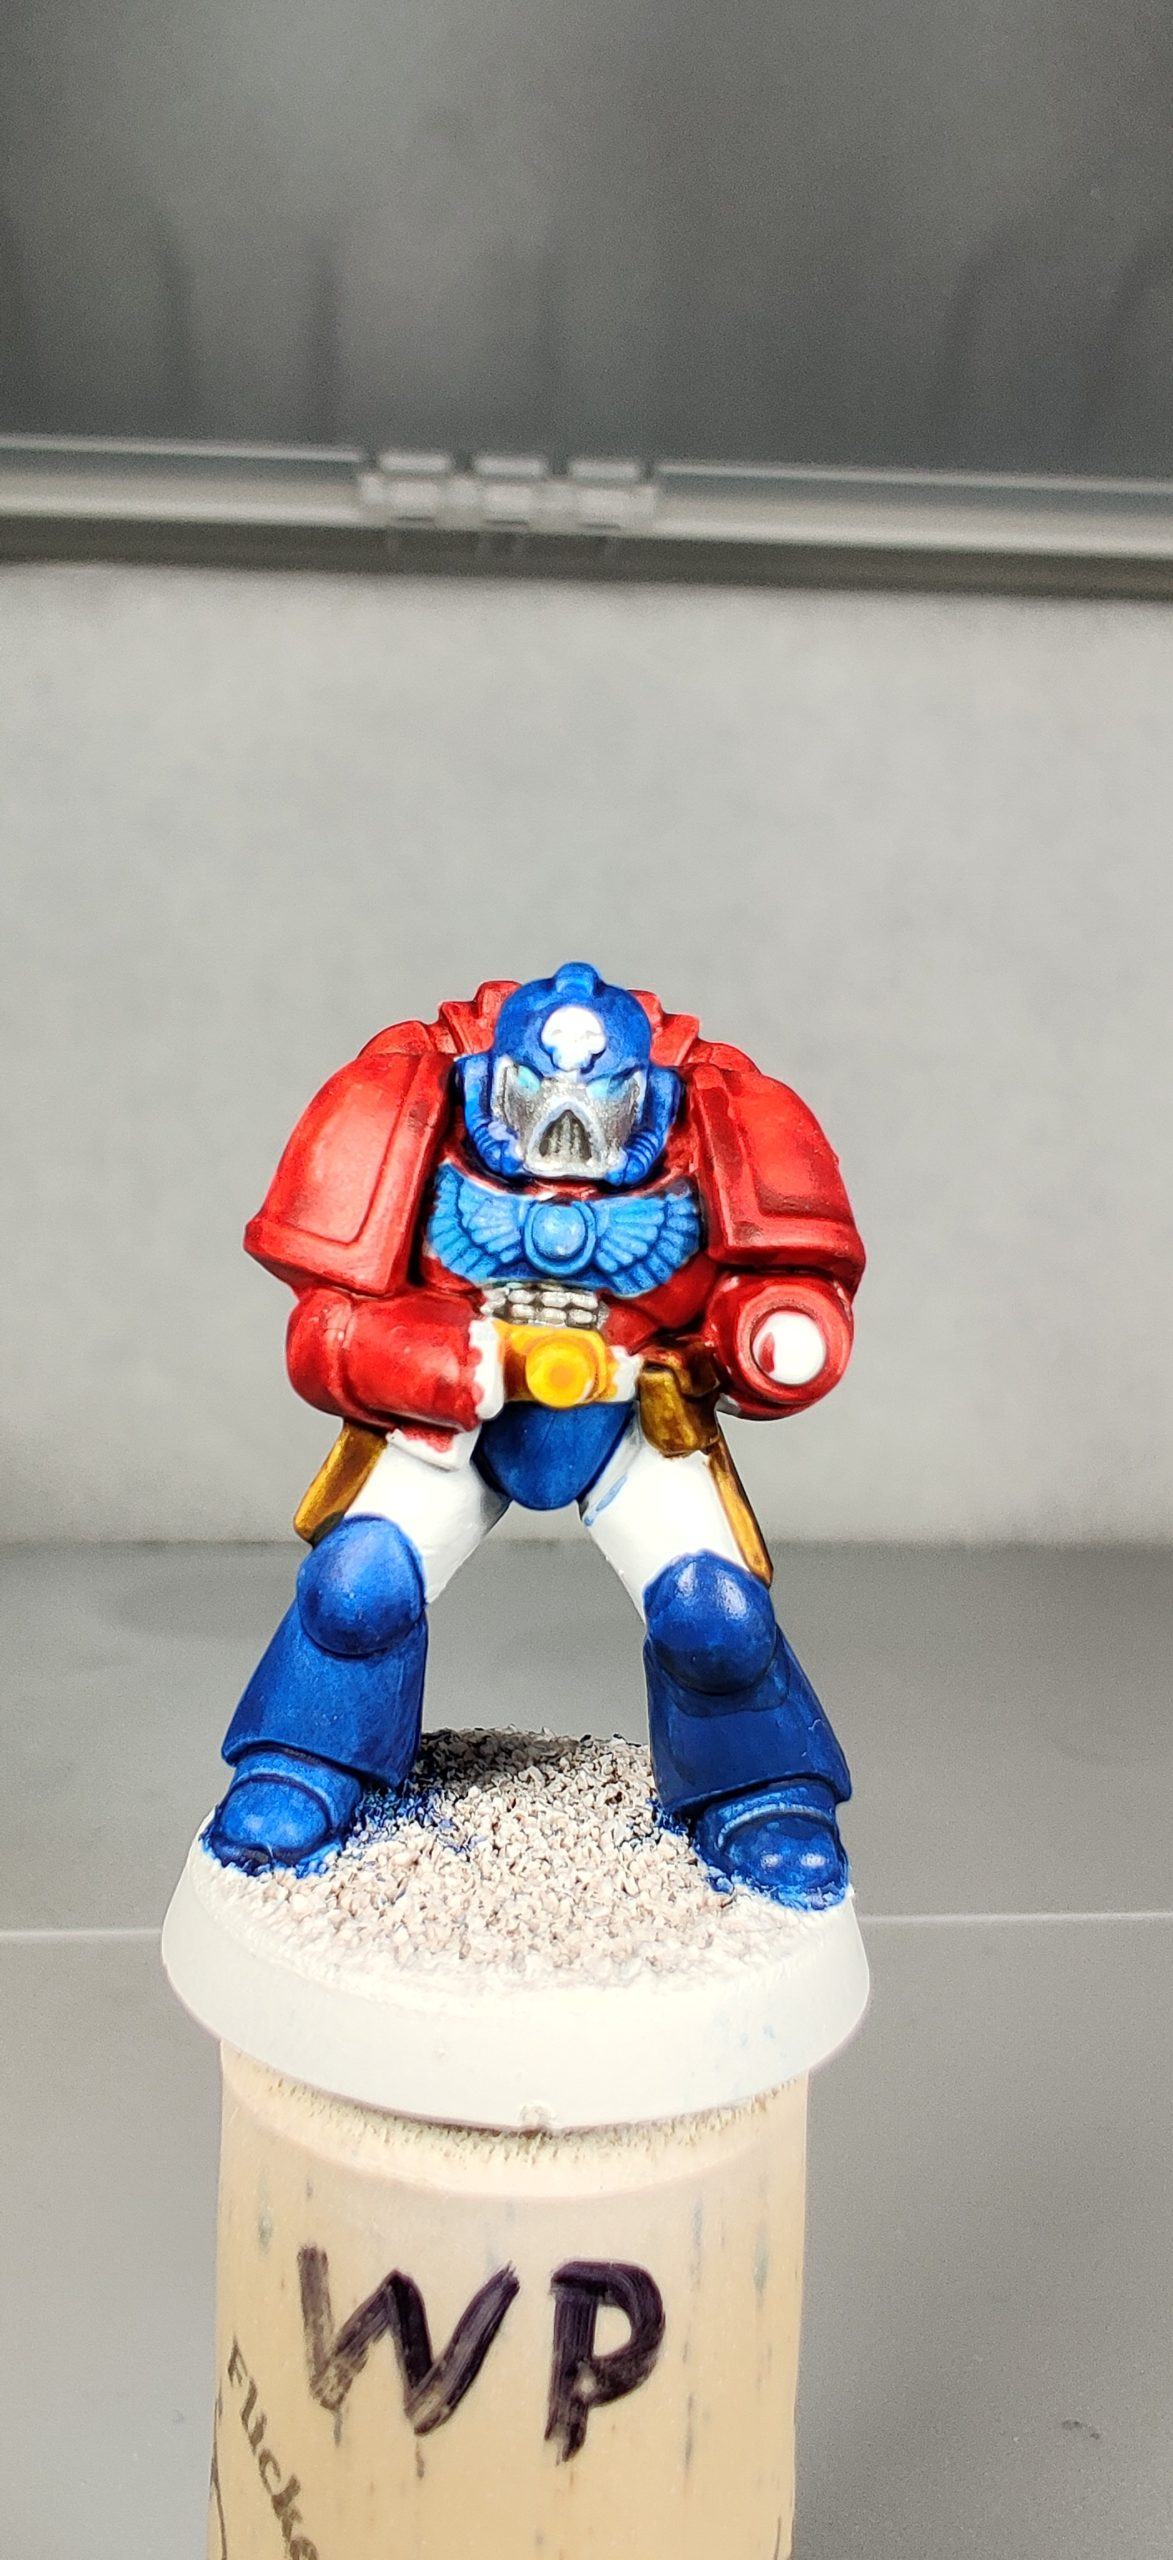 Second Fists of the Prime Marine test model.